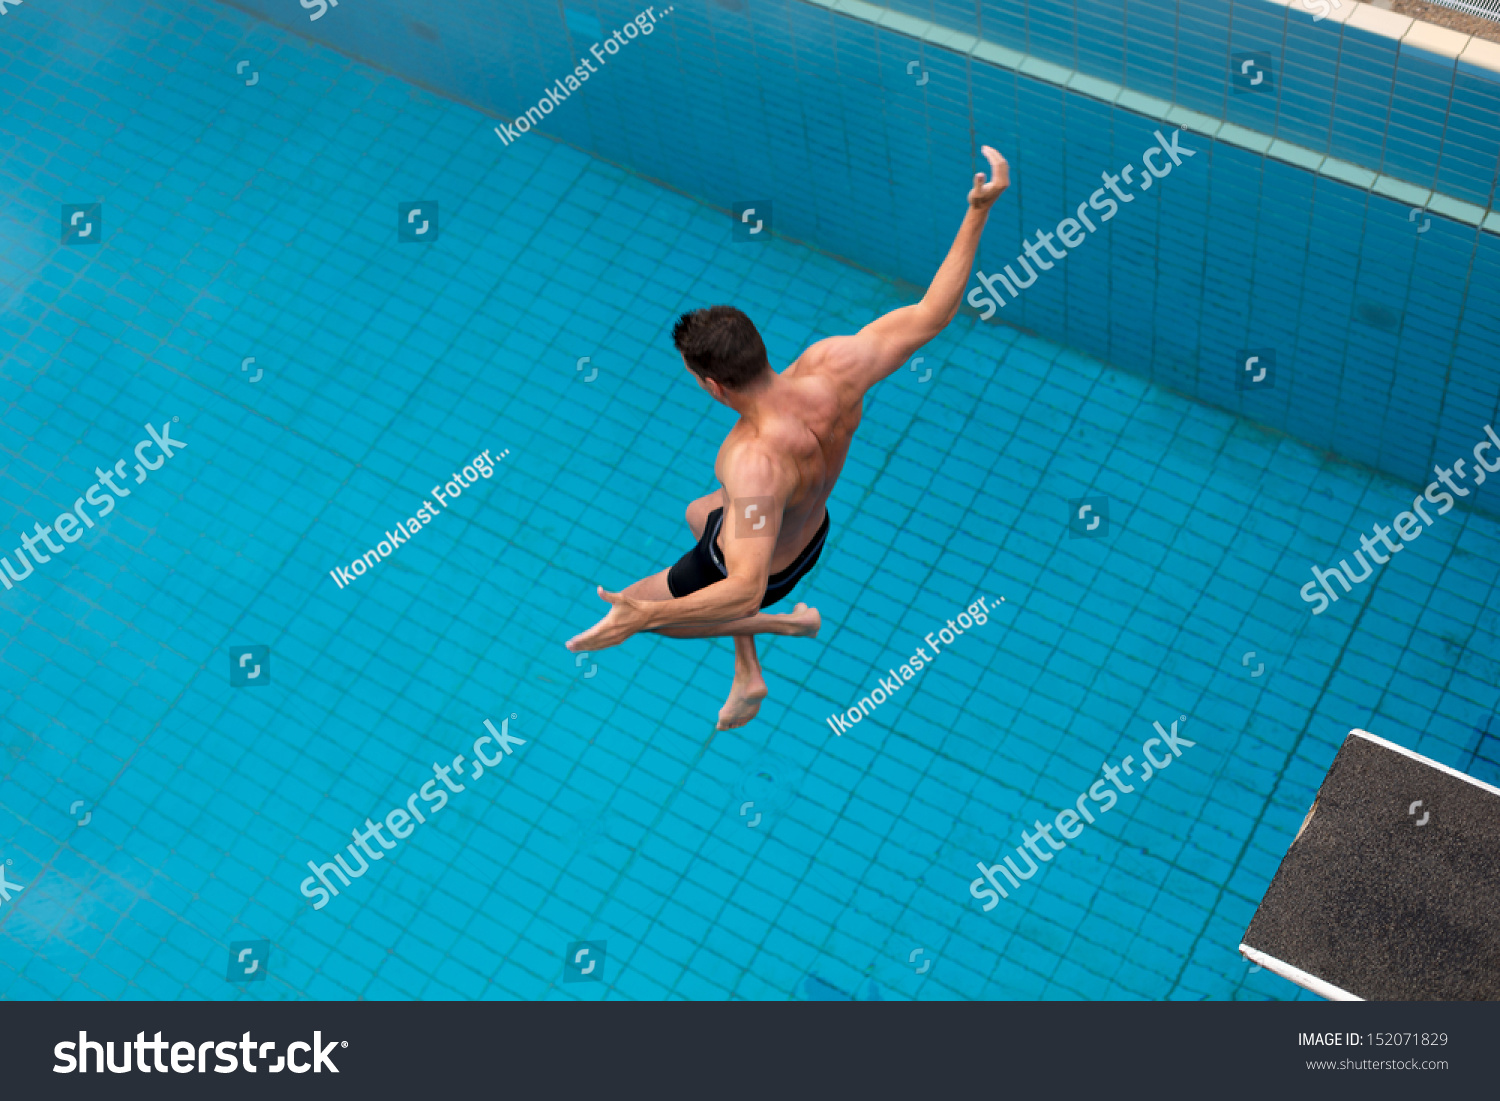 Public Swimming Pools With Diving Boards man jumping diving board public swimming stock photo 152071829